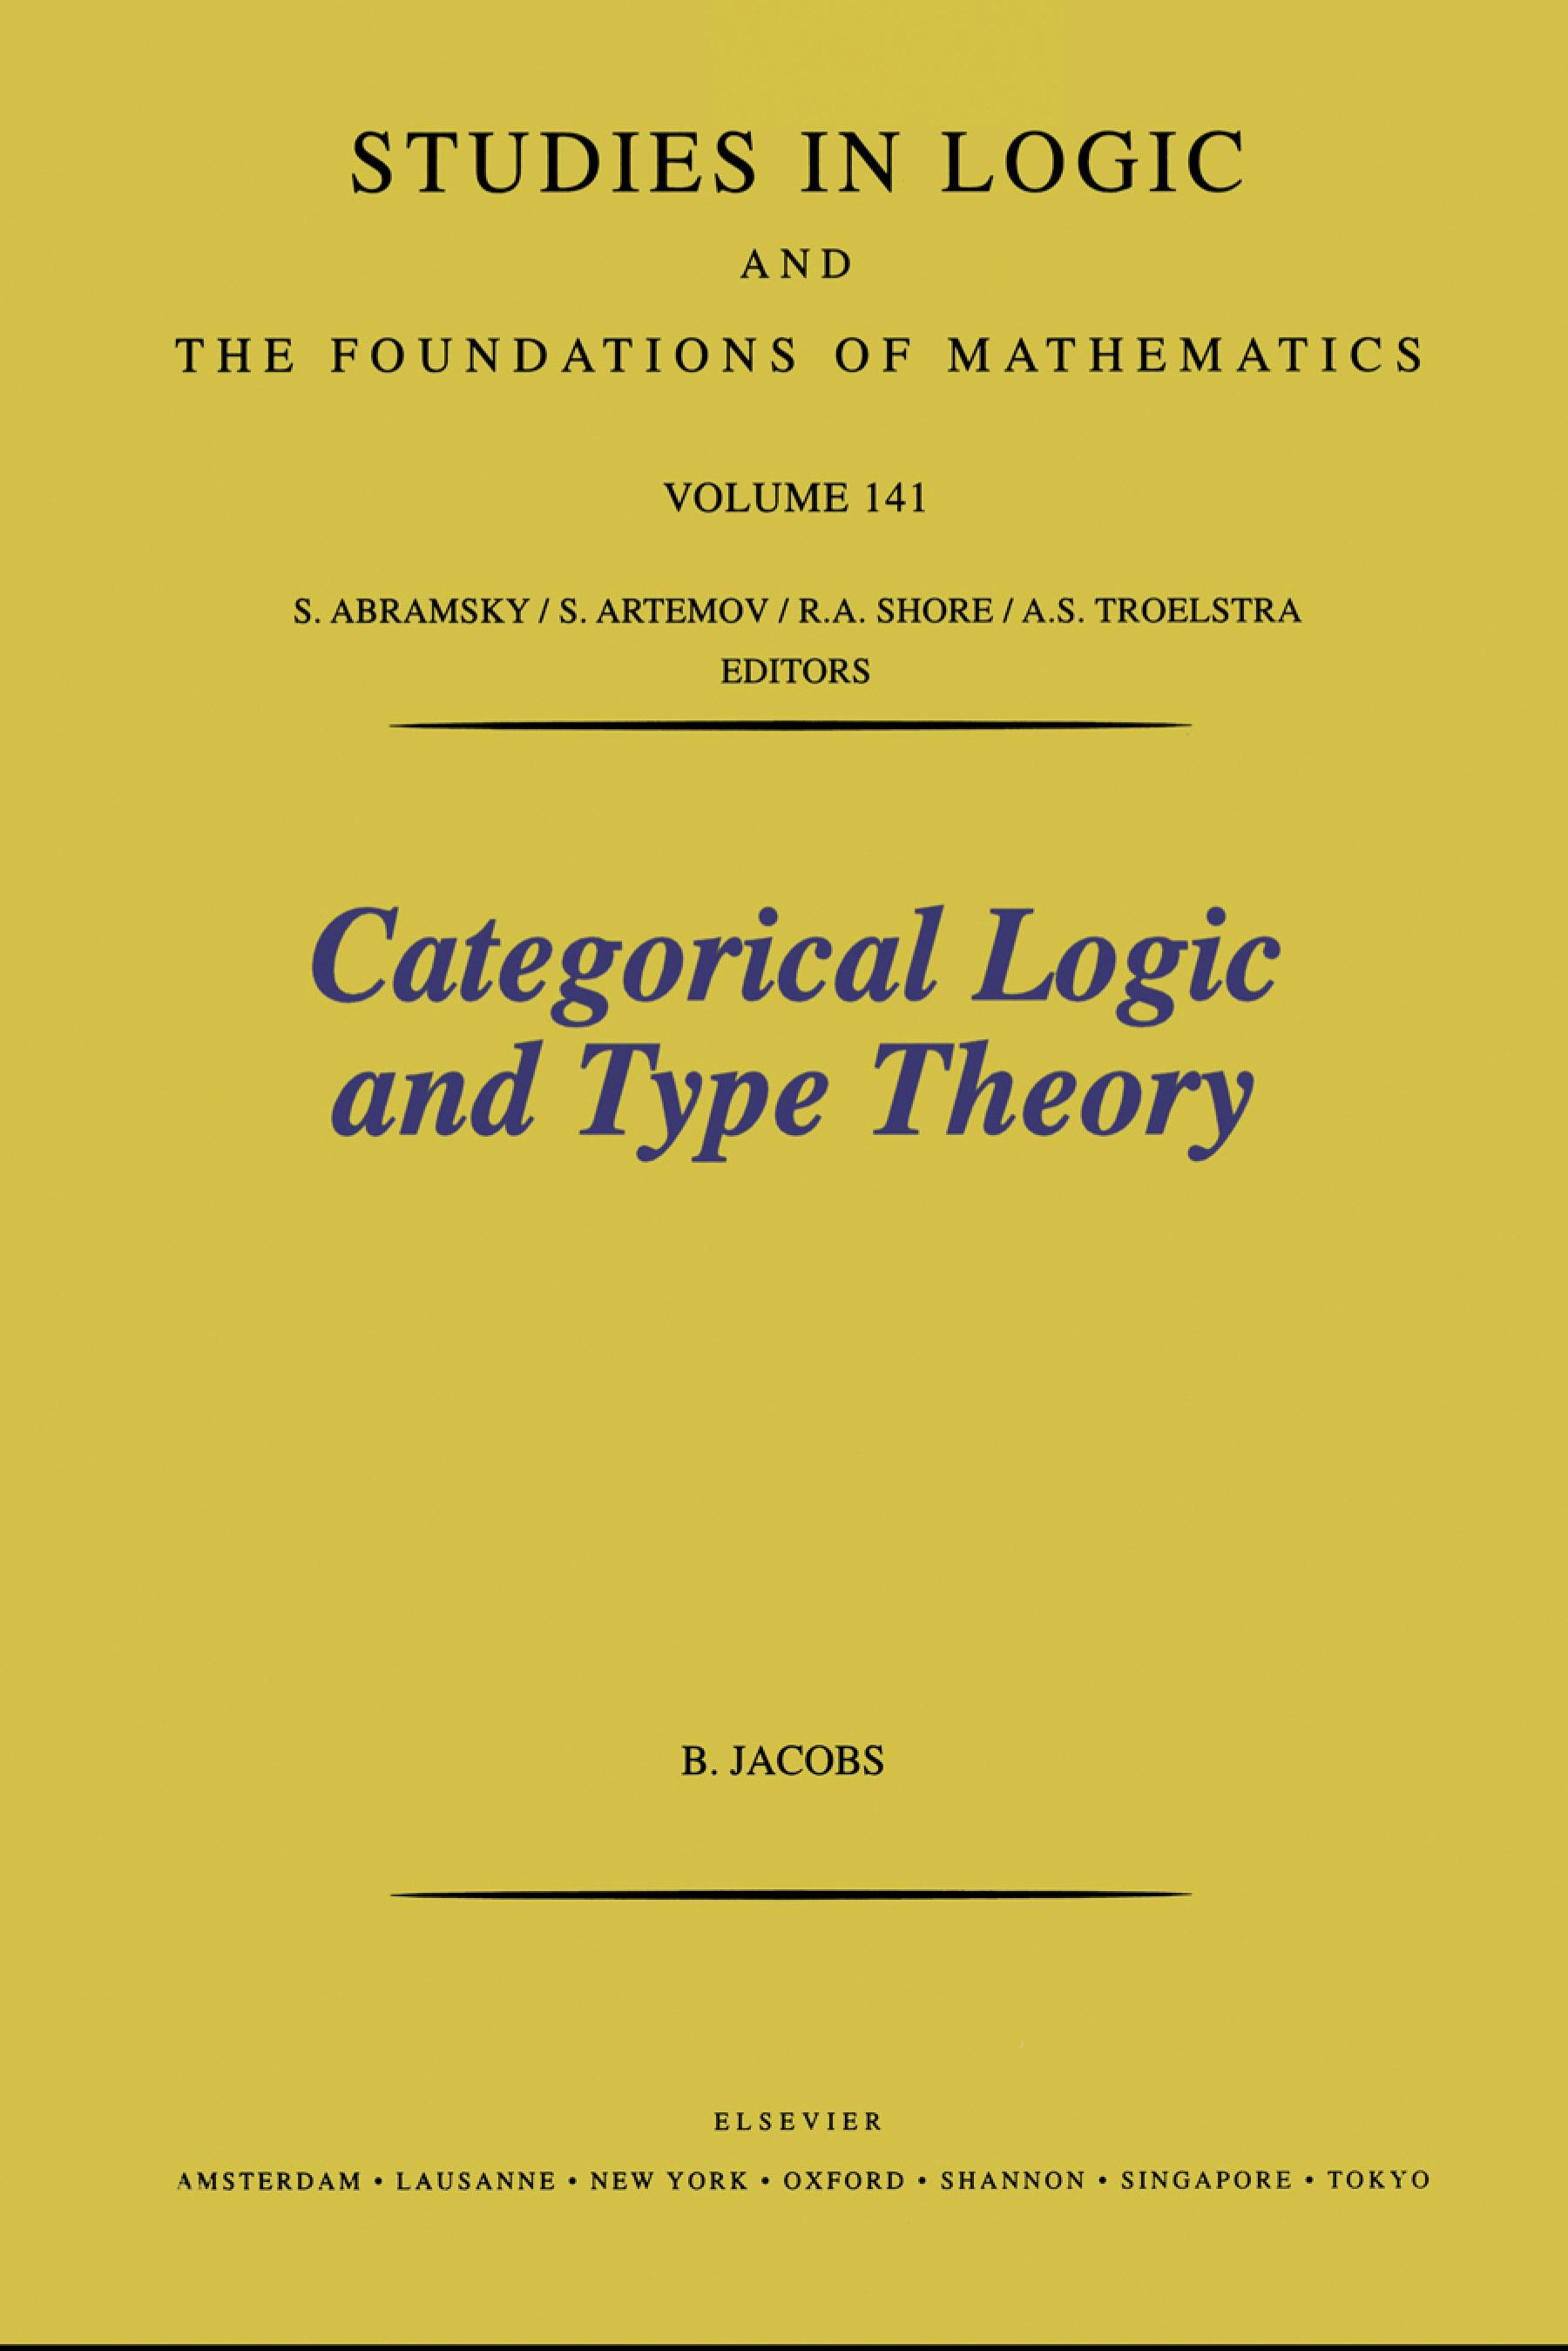 a comparative study of the logical Introduction study of the functioning of internal consistent cognitive systems patterns, including individual logical operations systems, is inextricably linked to the issue of the universality of its spontaneous formation and development processes in different socio-cultural contexts.